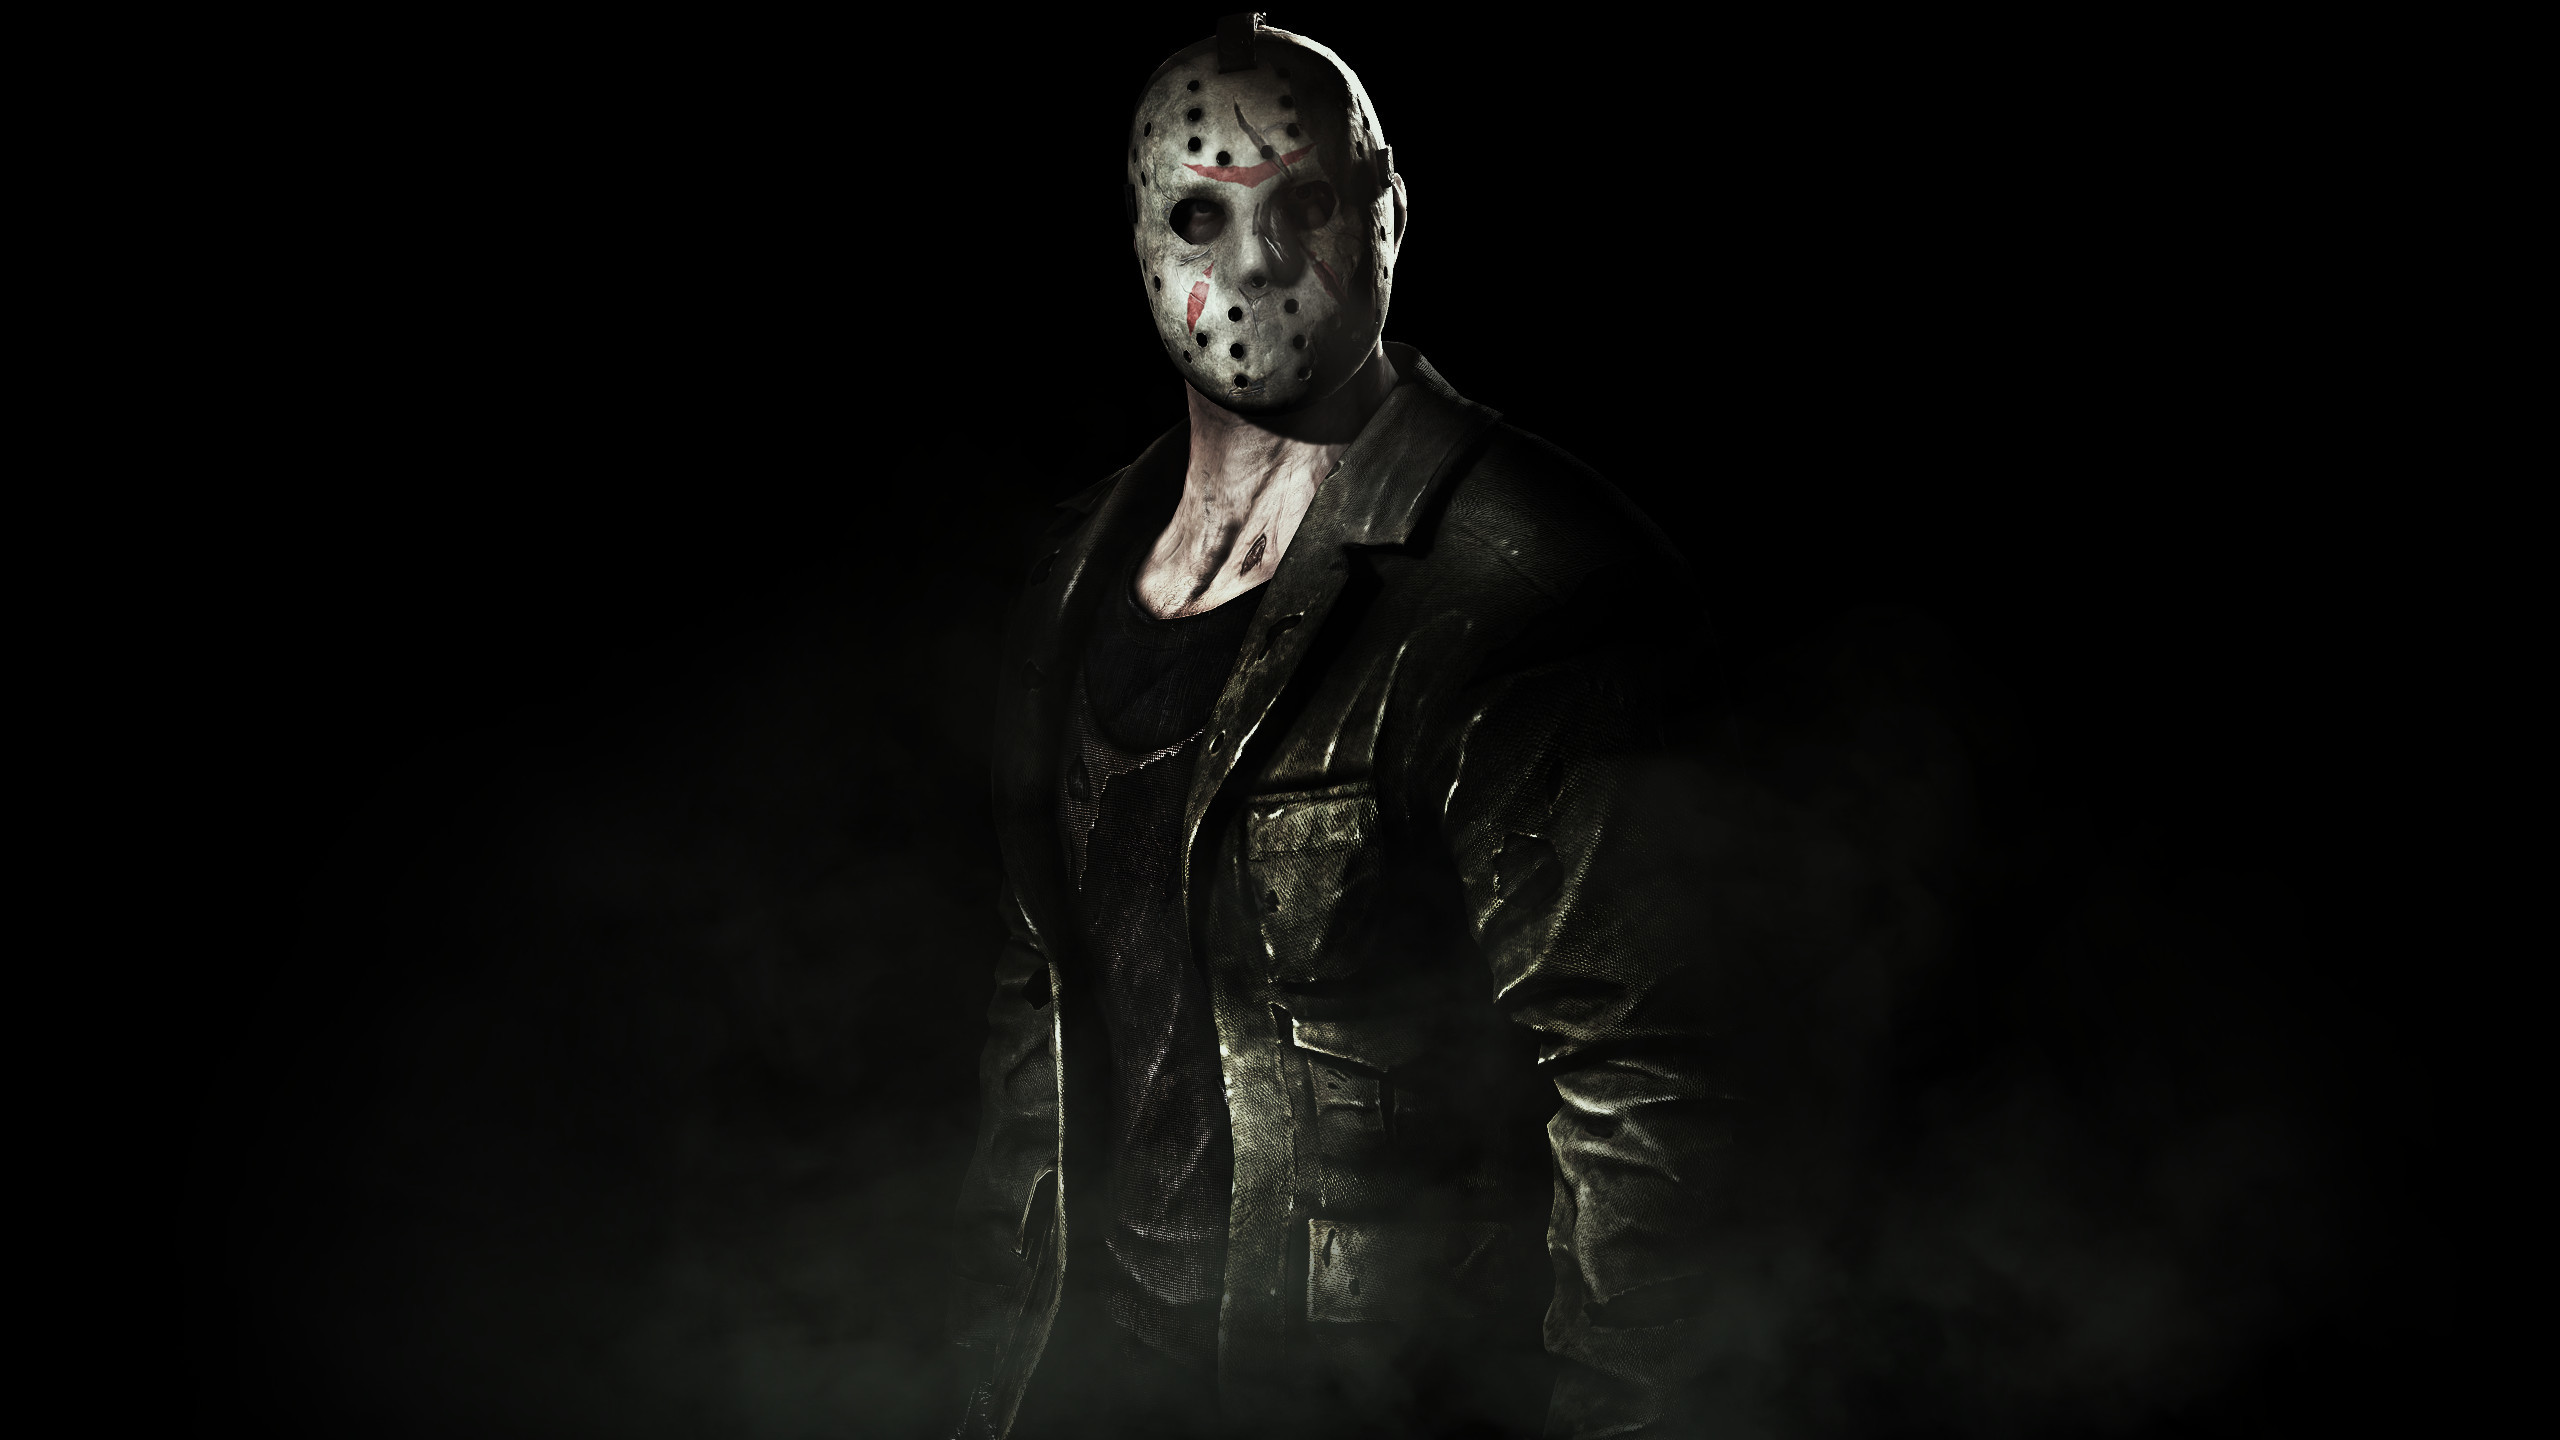 Res: 2560x1440, Movies Wallpaper. Download the following Jason Wallpapers Friday 13Th ...